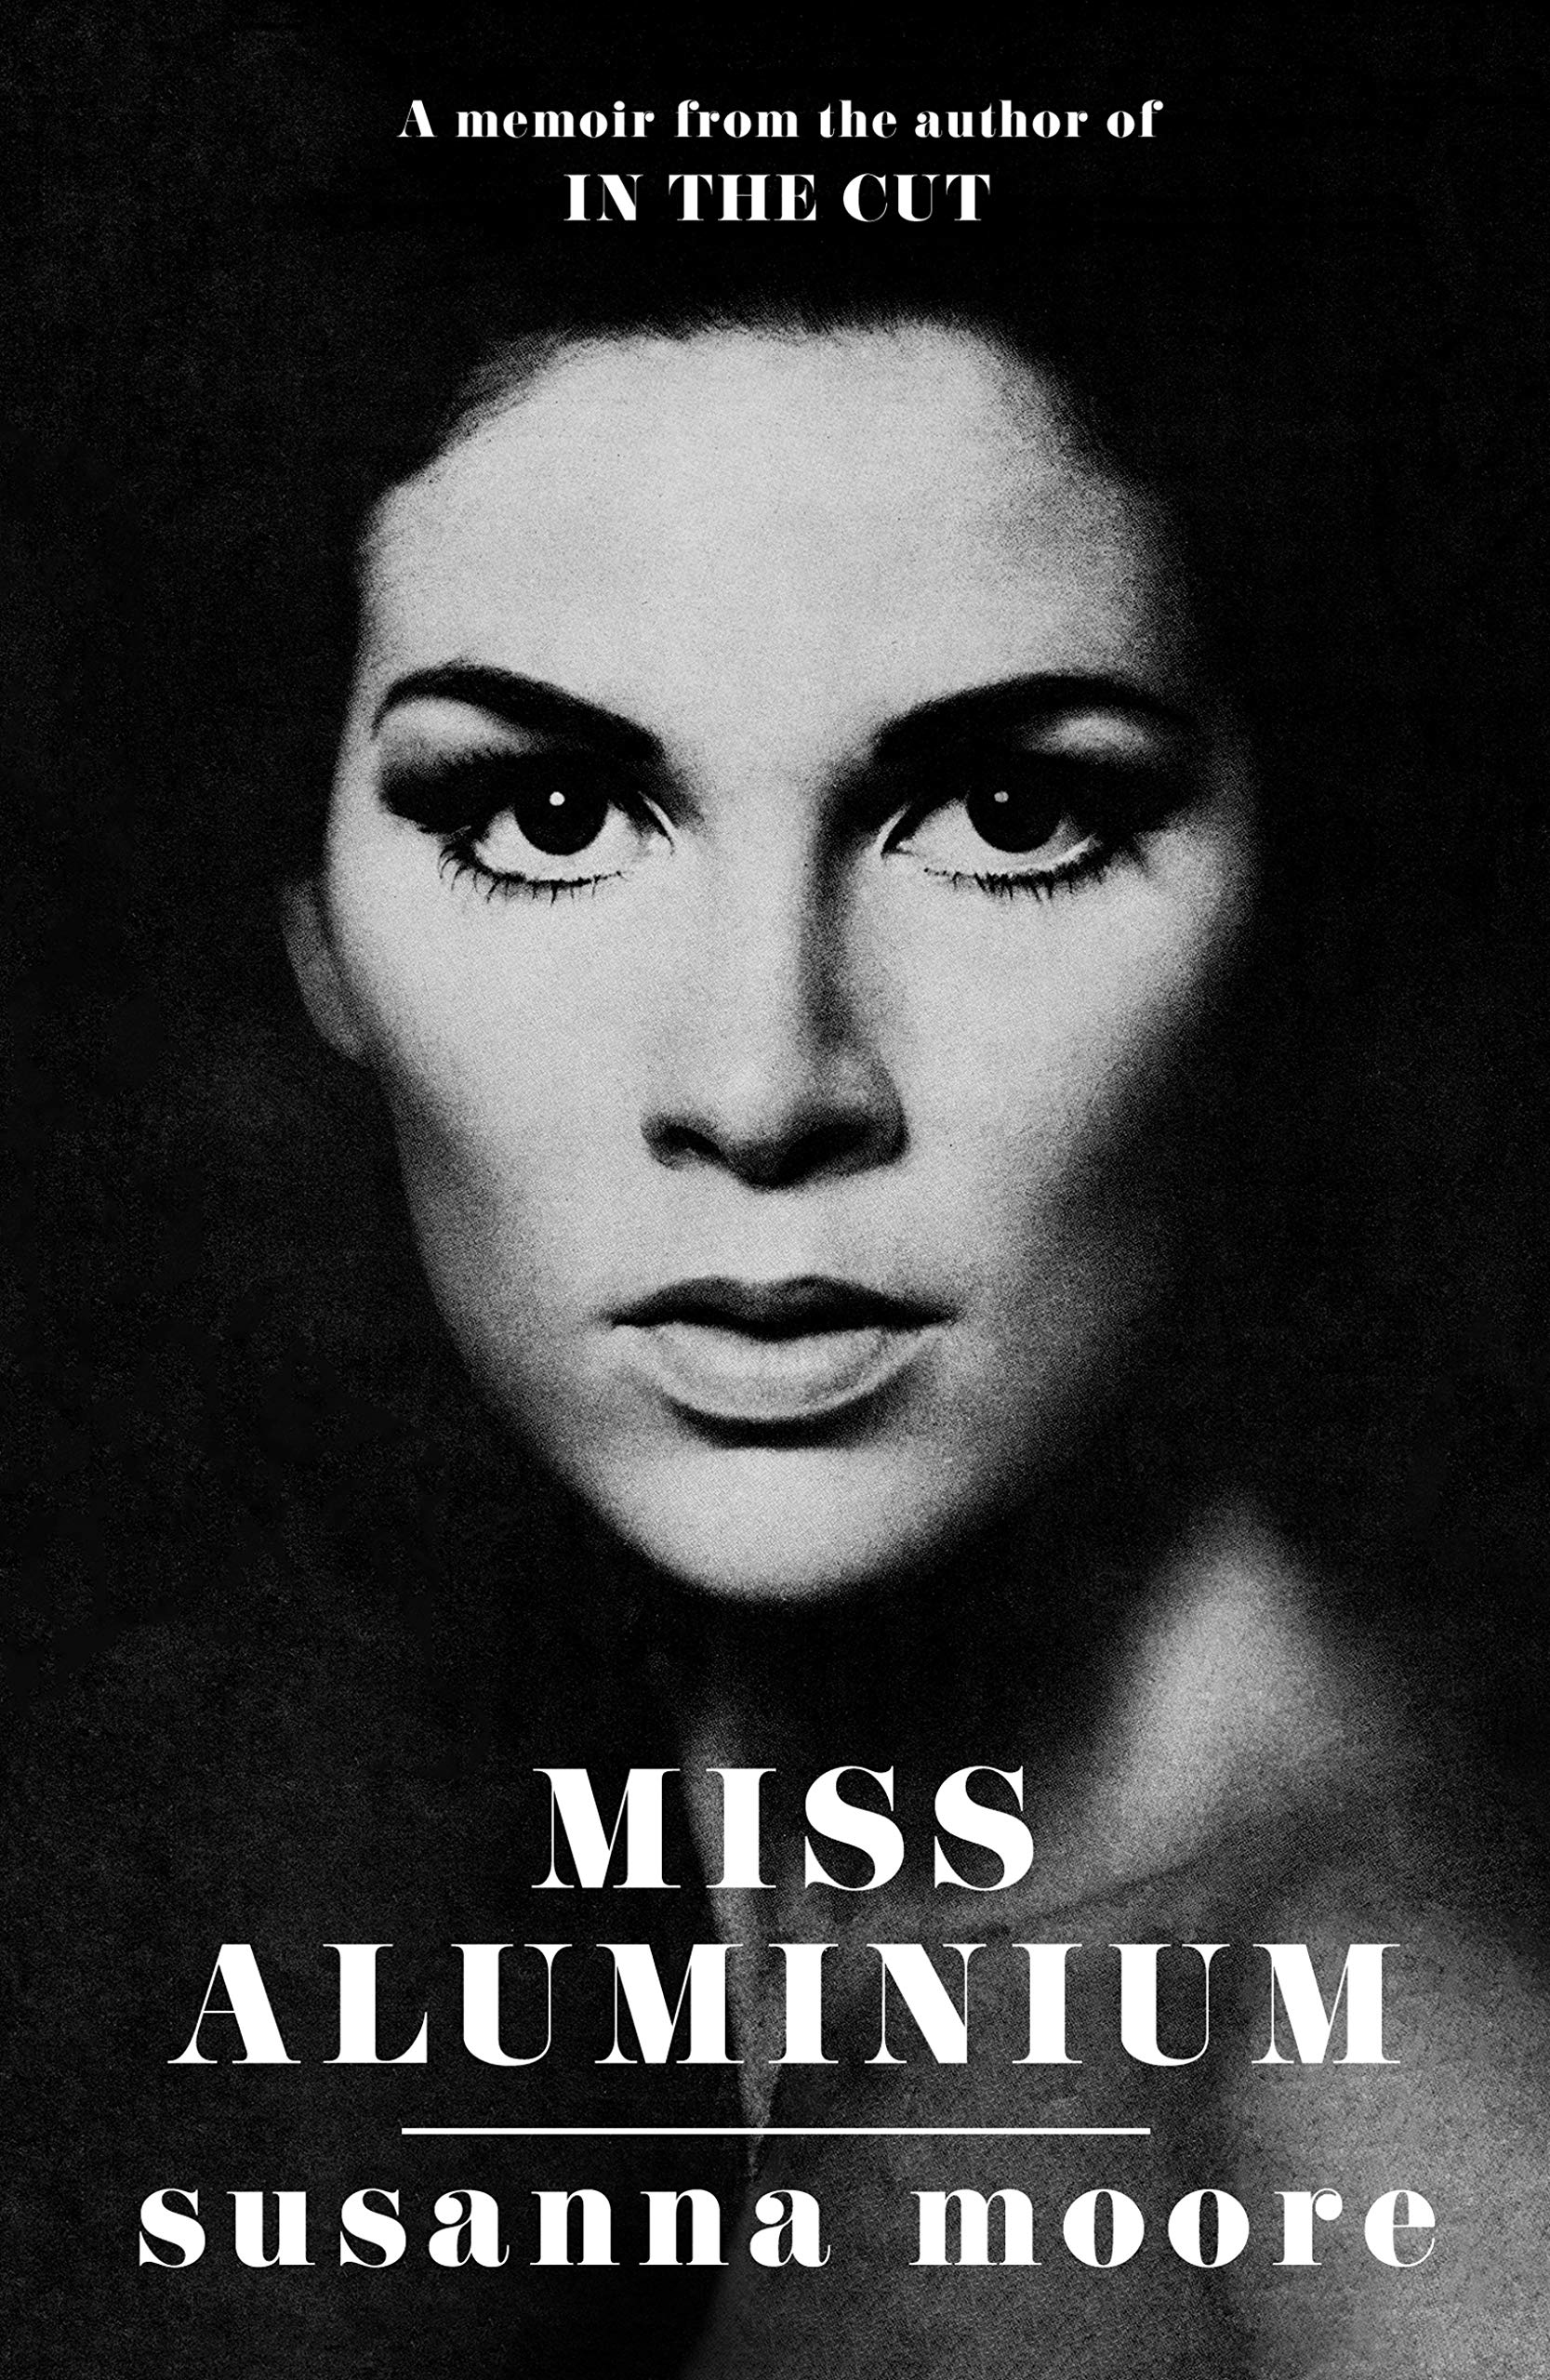 Miss Aluminium: ONE OF THE SUNDAY TIMES' 100 BEST SUMMER READS OF 2020 por Susanna Moore